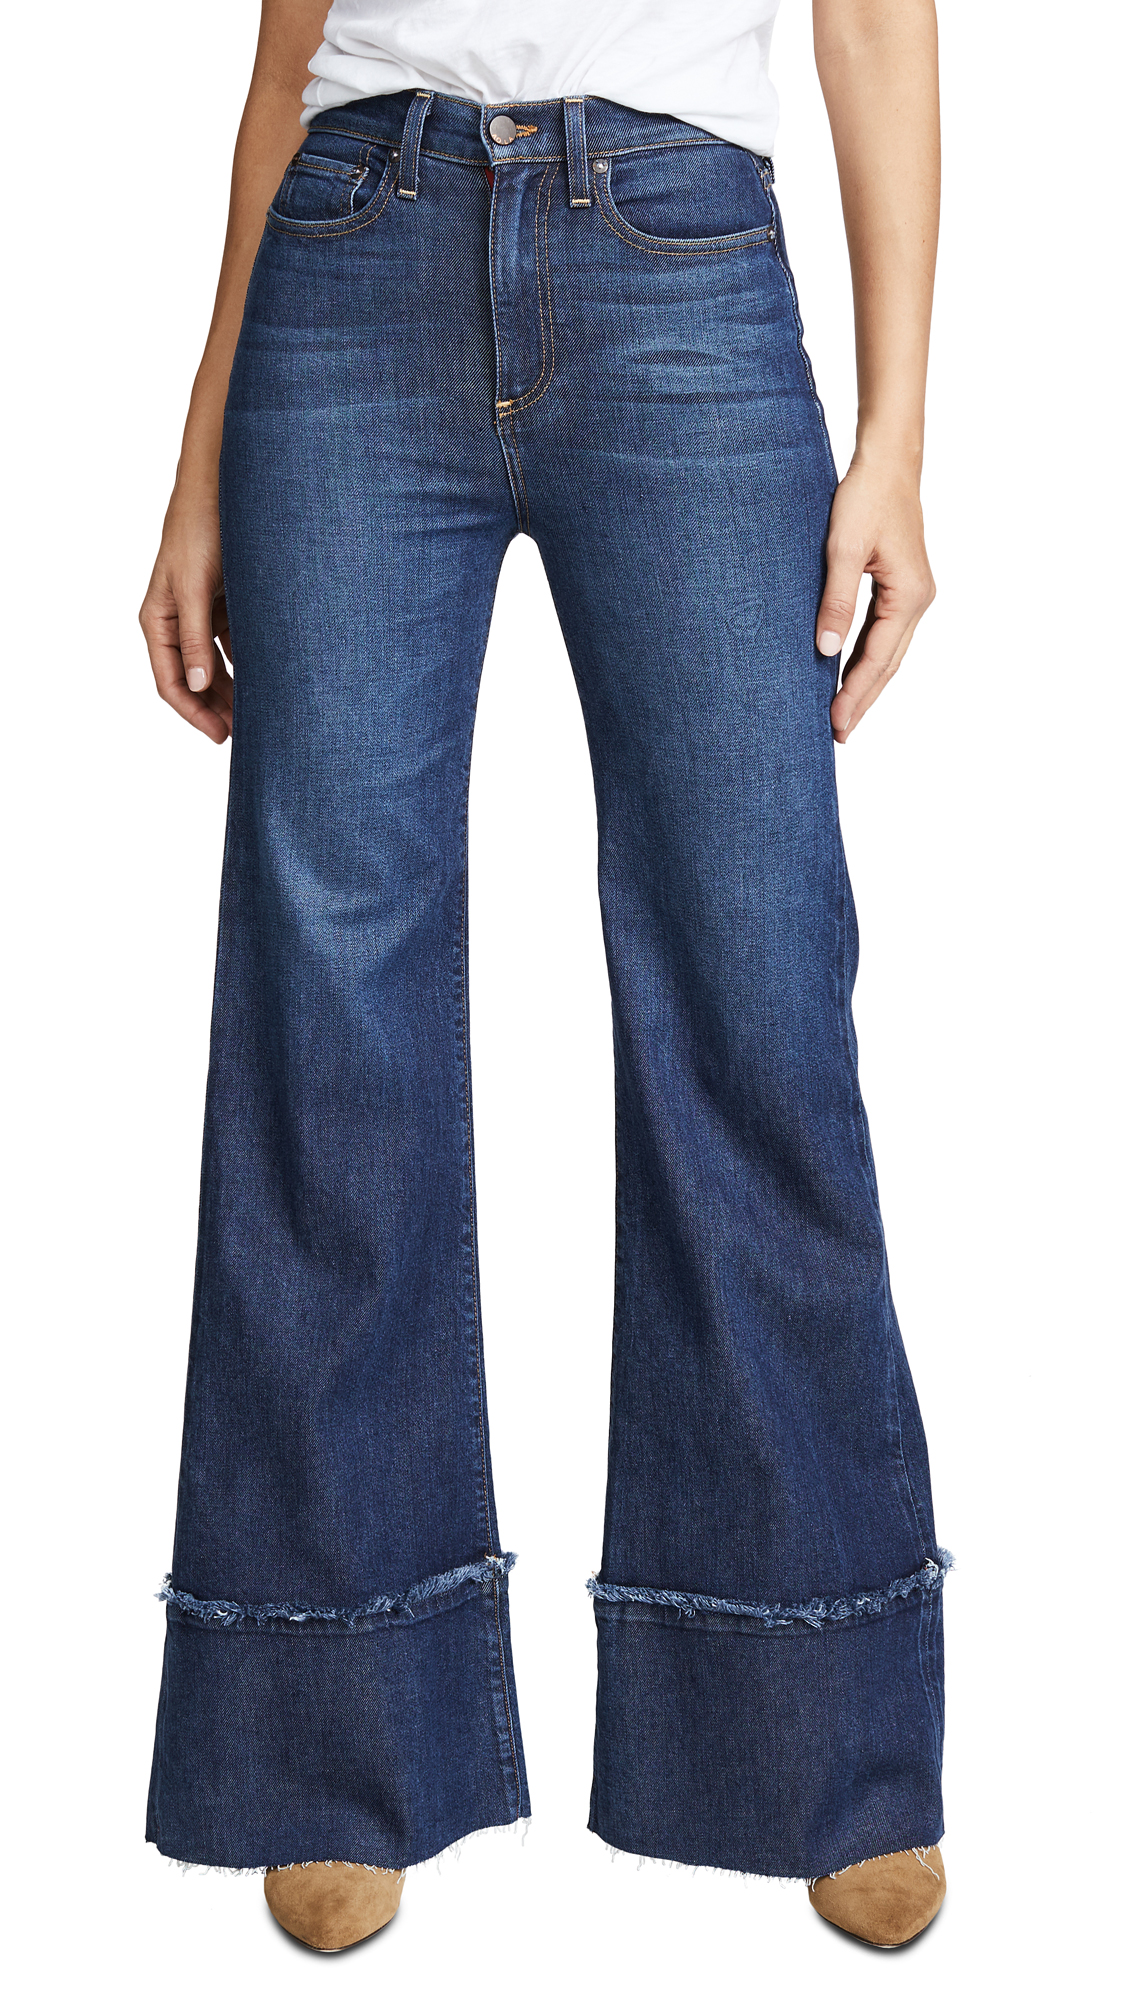 Gorgeous High Rise Trouser Jeans with Exaggerated Hem